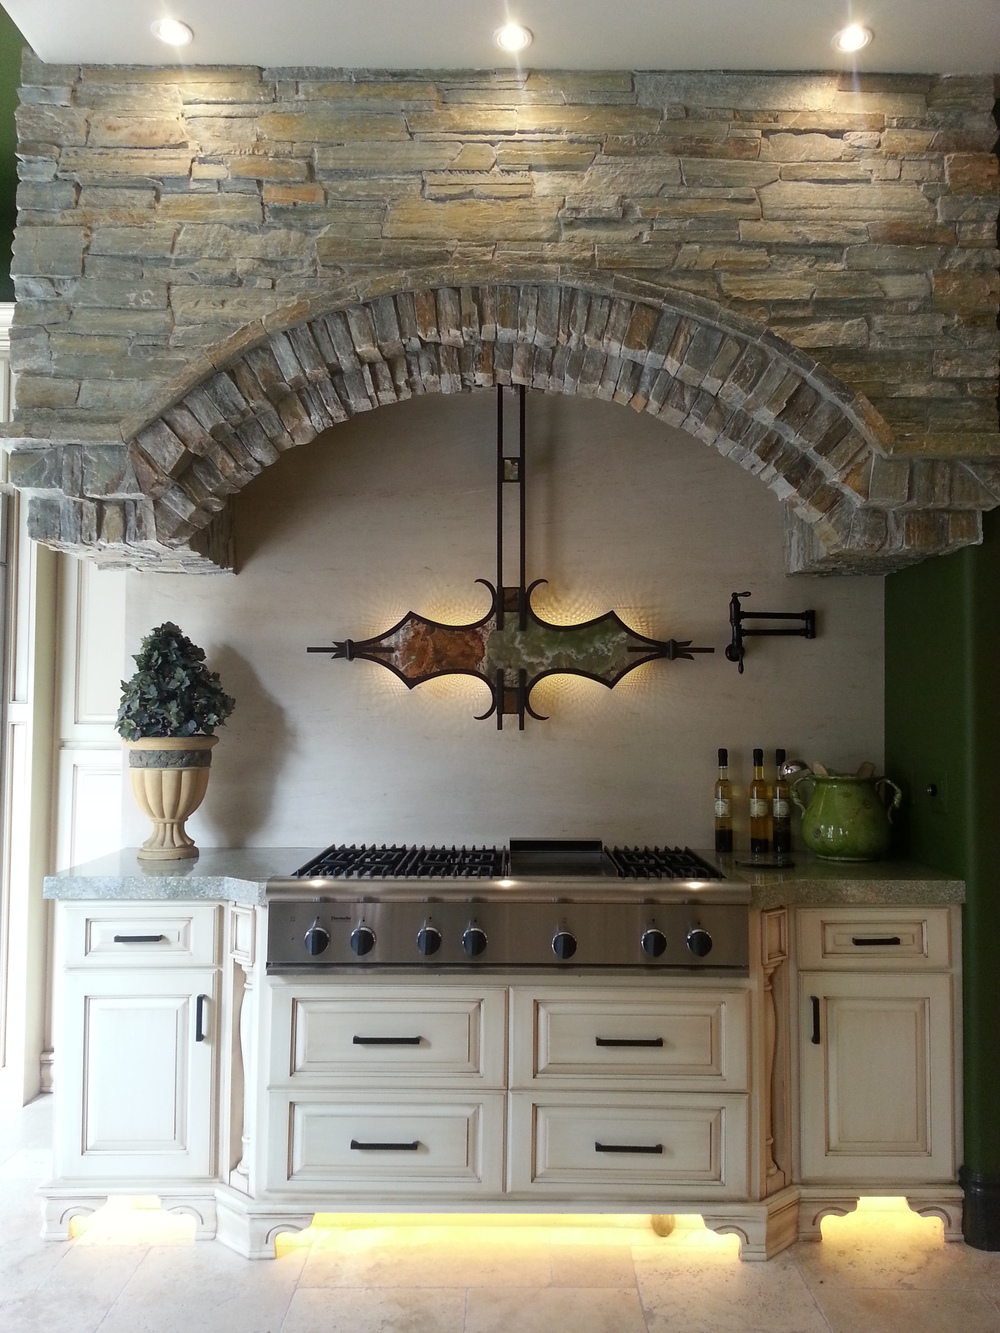 Rancho Santa Fe, Ca -Custom Kitchen -Custom Range Hood